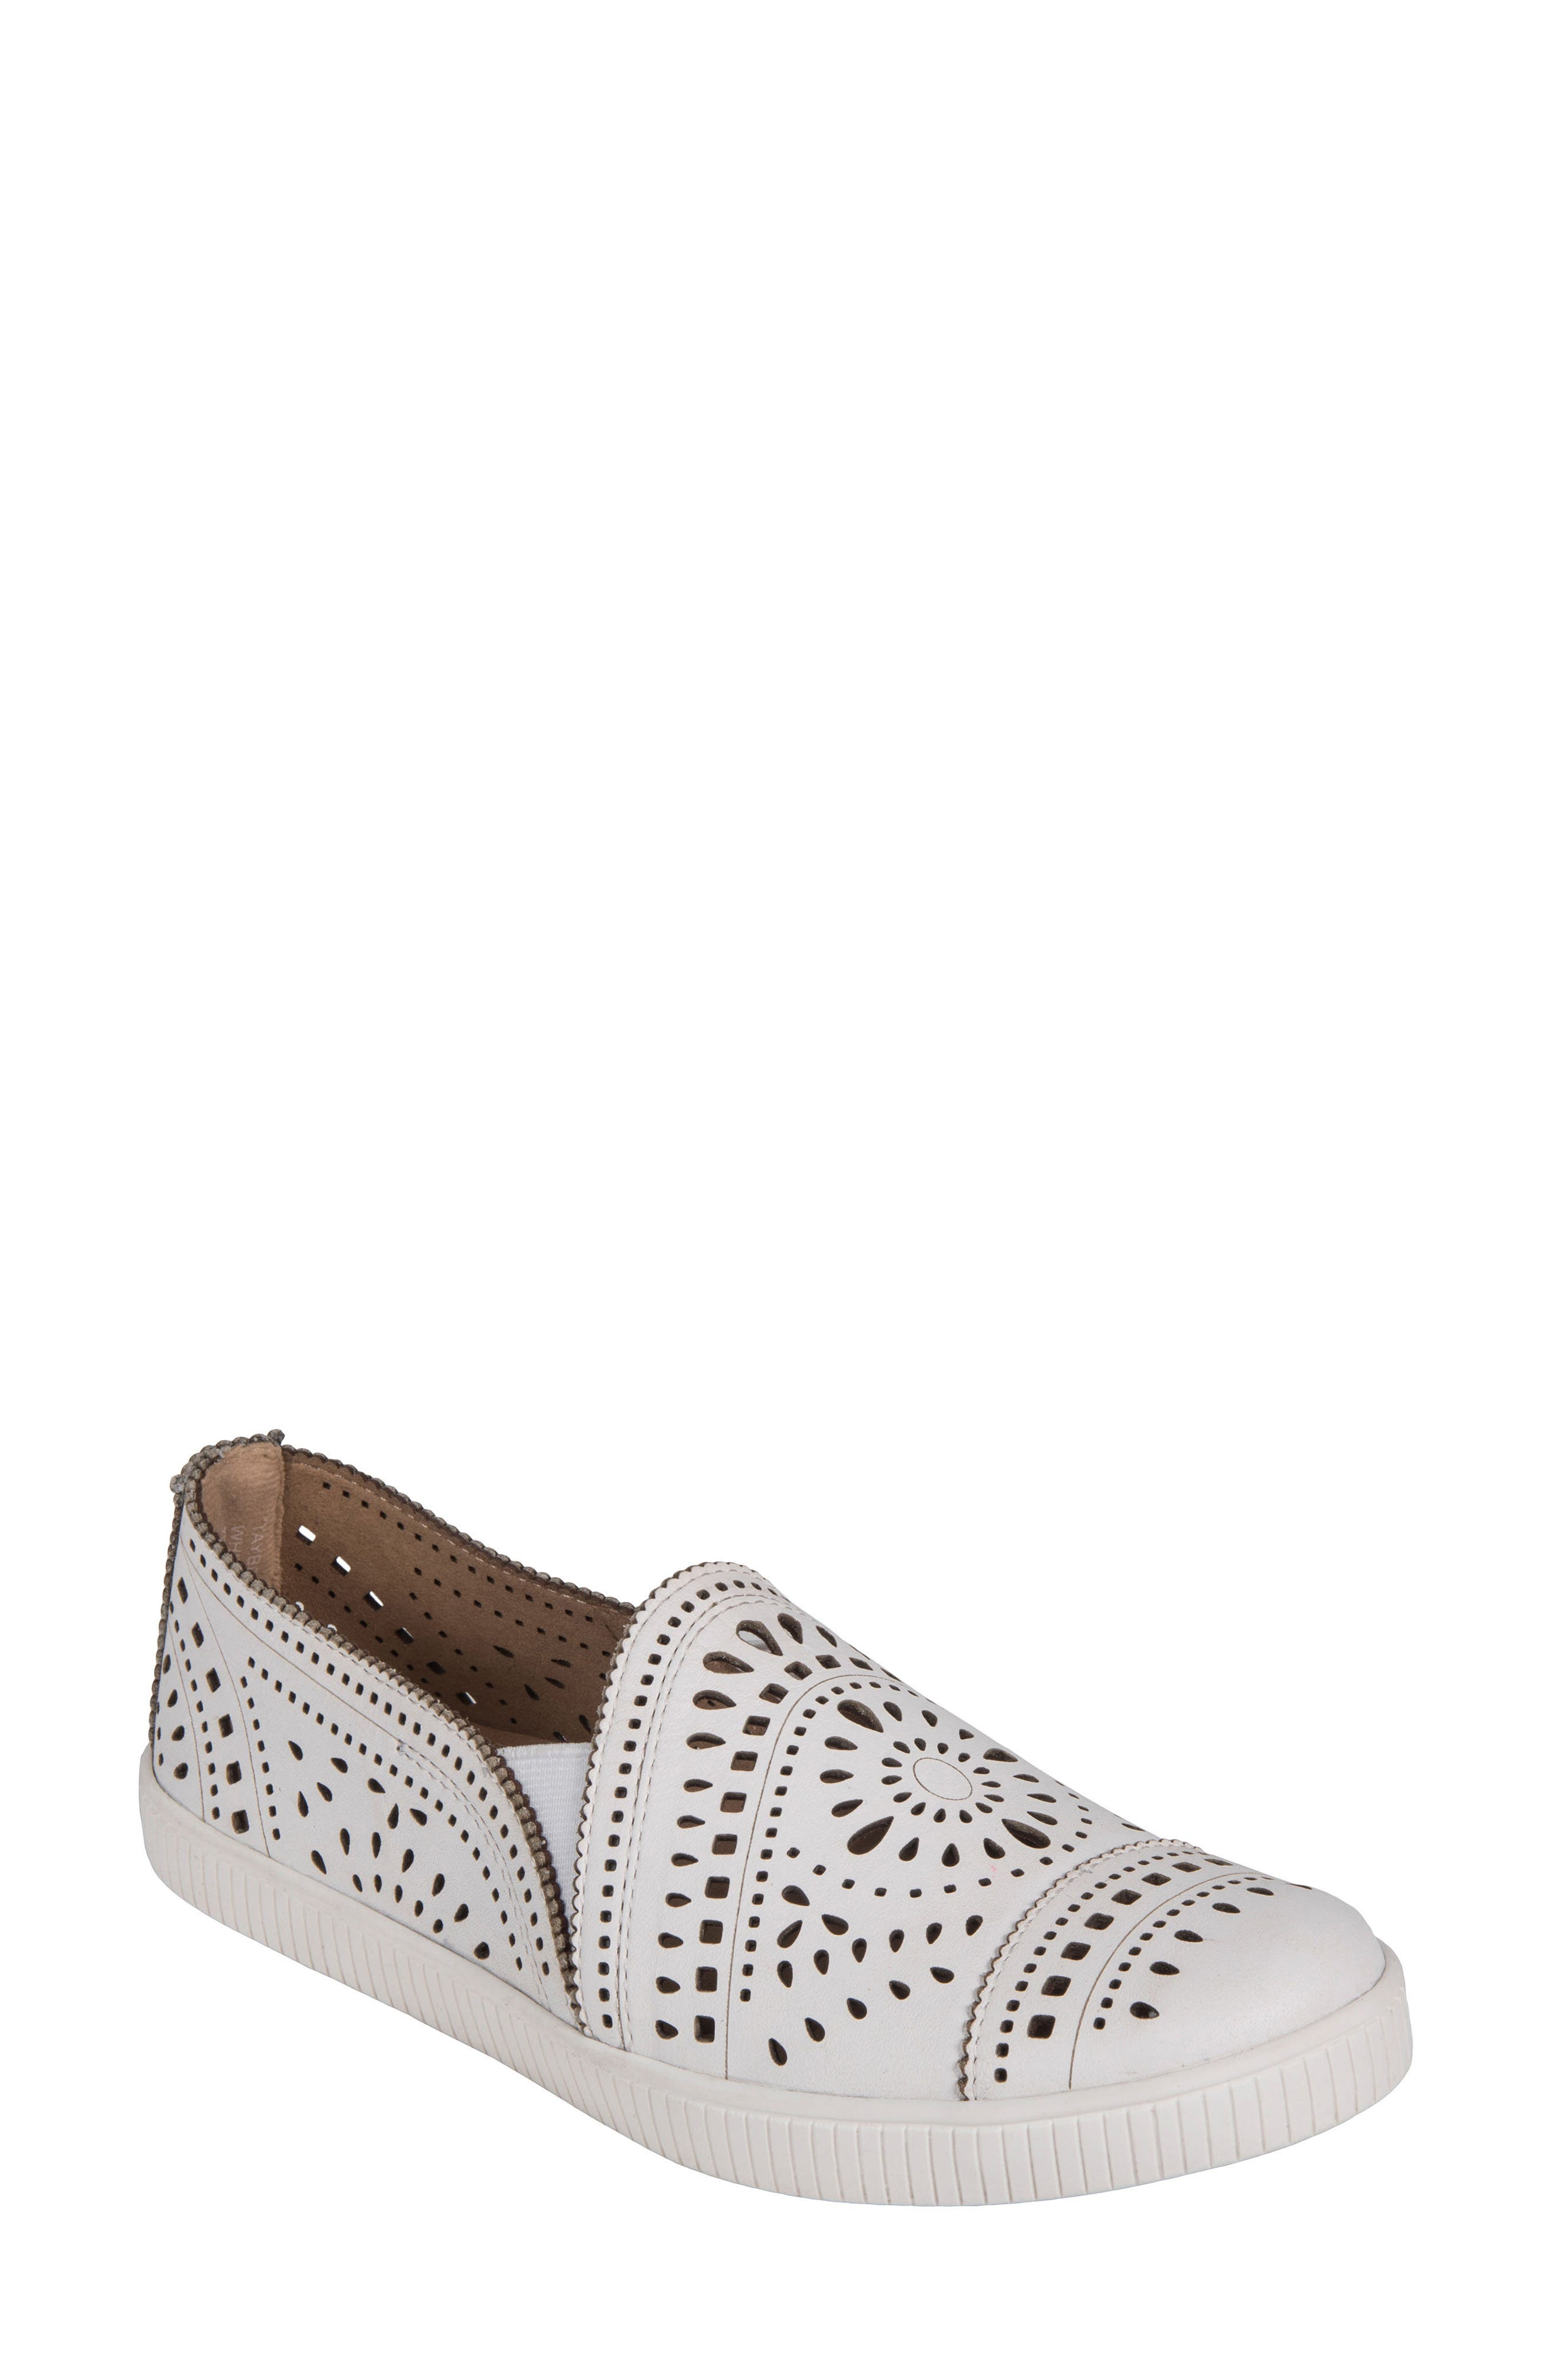 Tayberry Perforated Slip-On Sneaker,                             Main thumbnail 2, color,